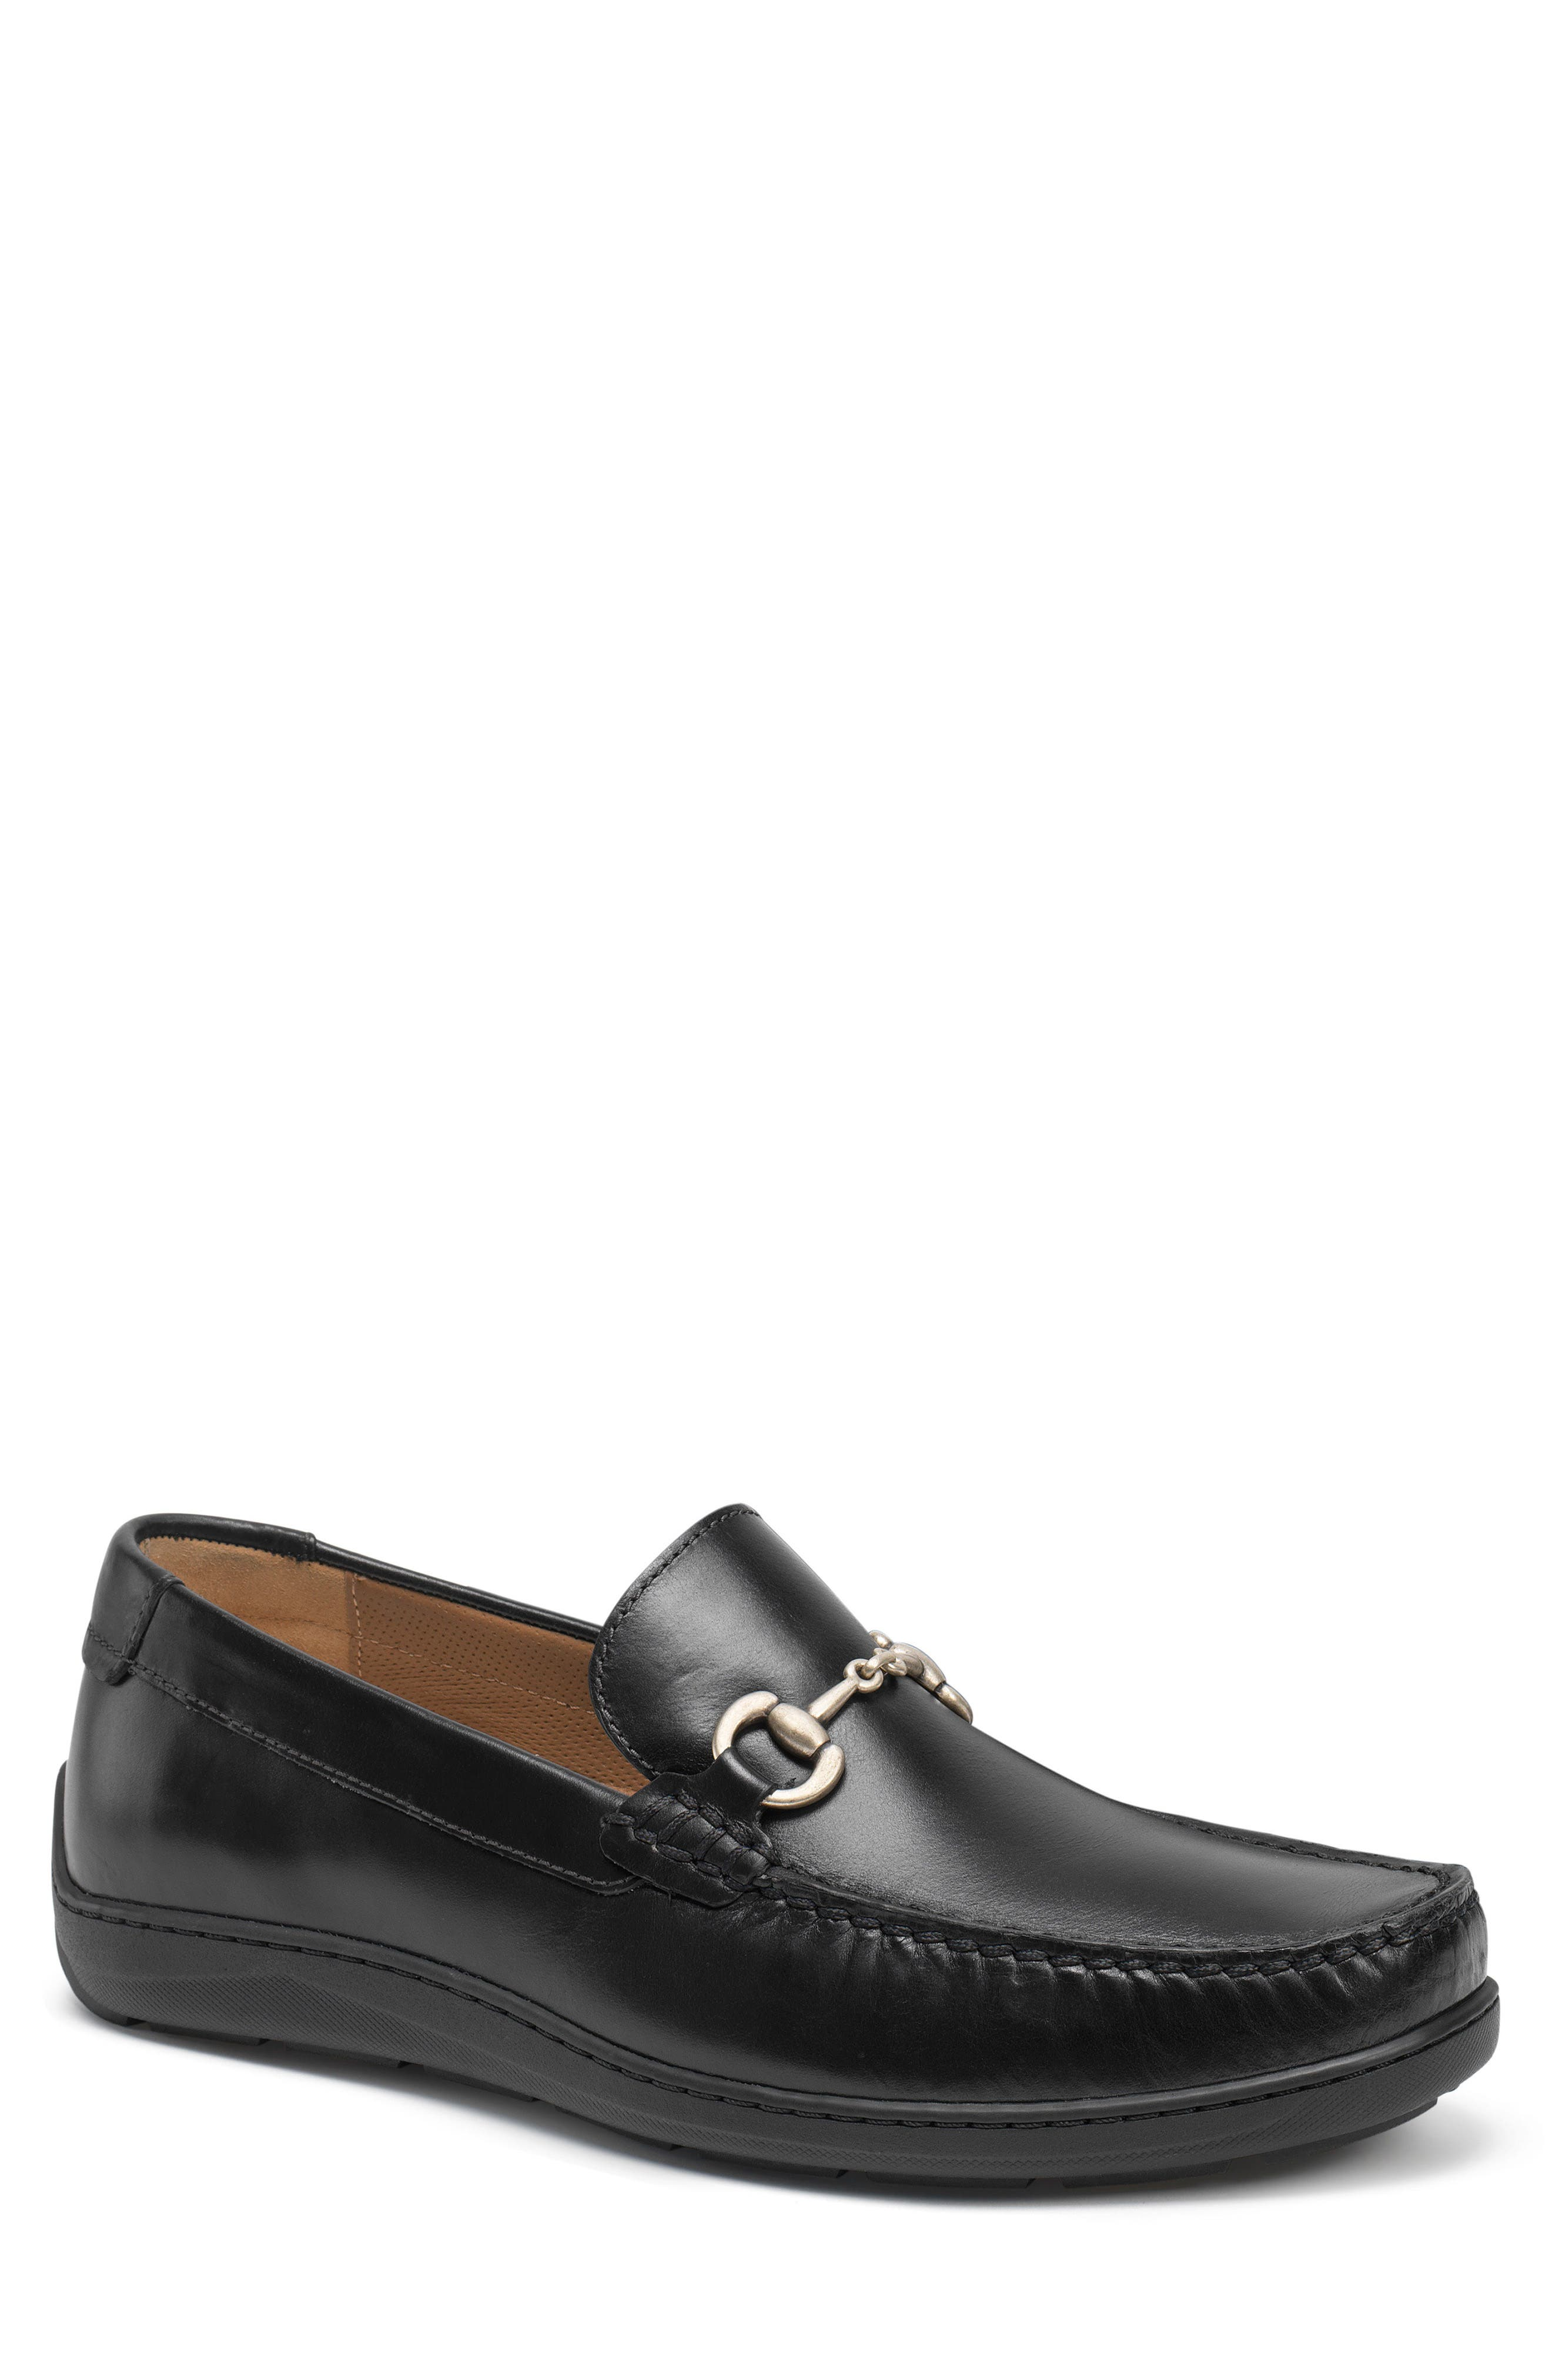 Stalworth Bit Loafer,                         Main,                         color, 001